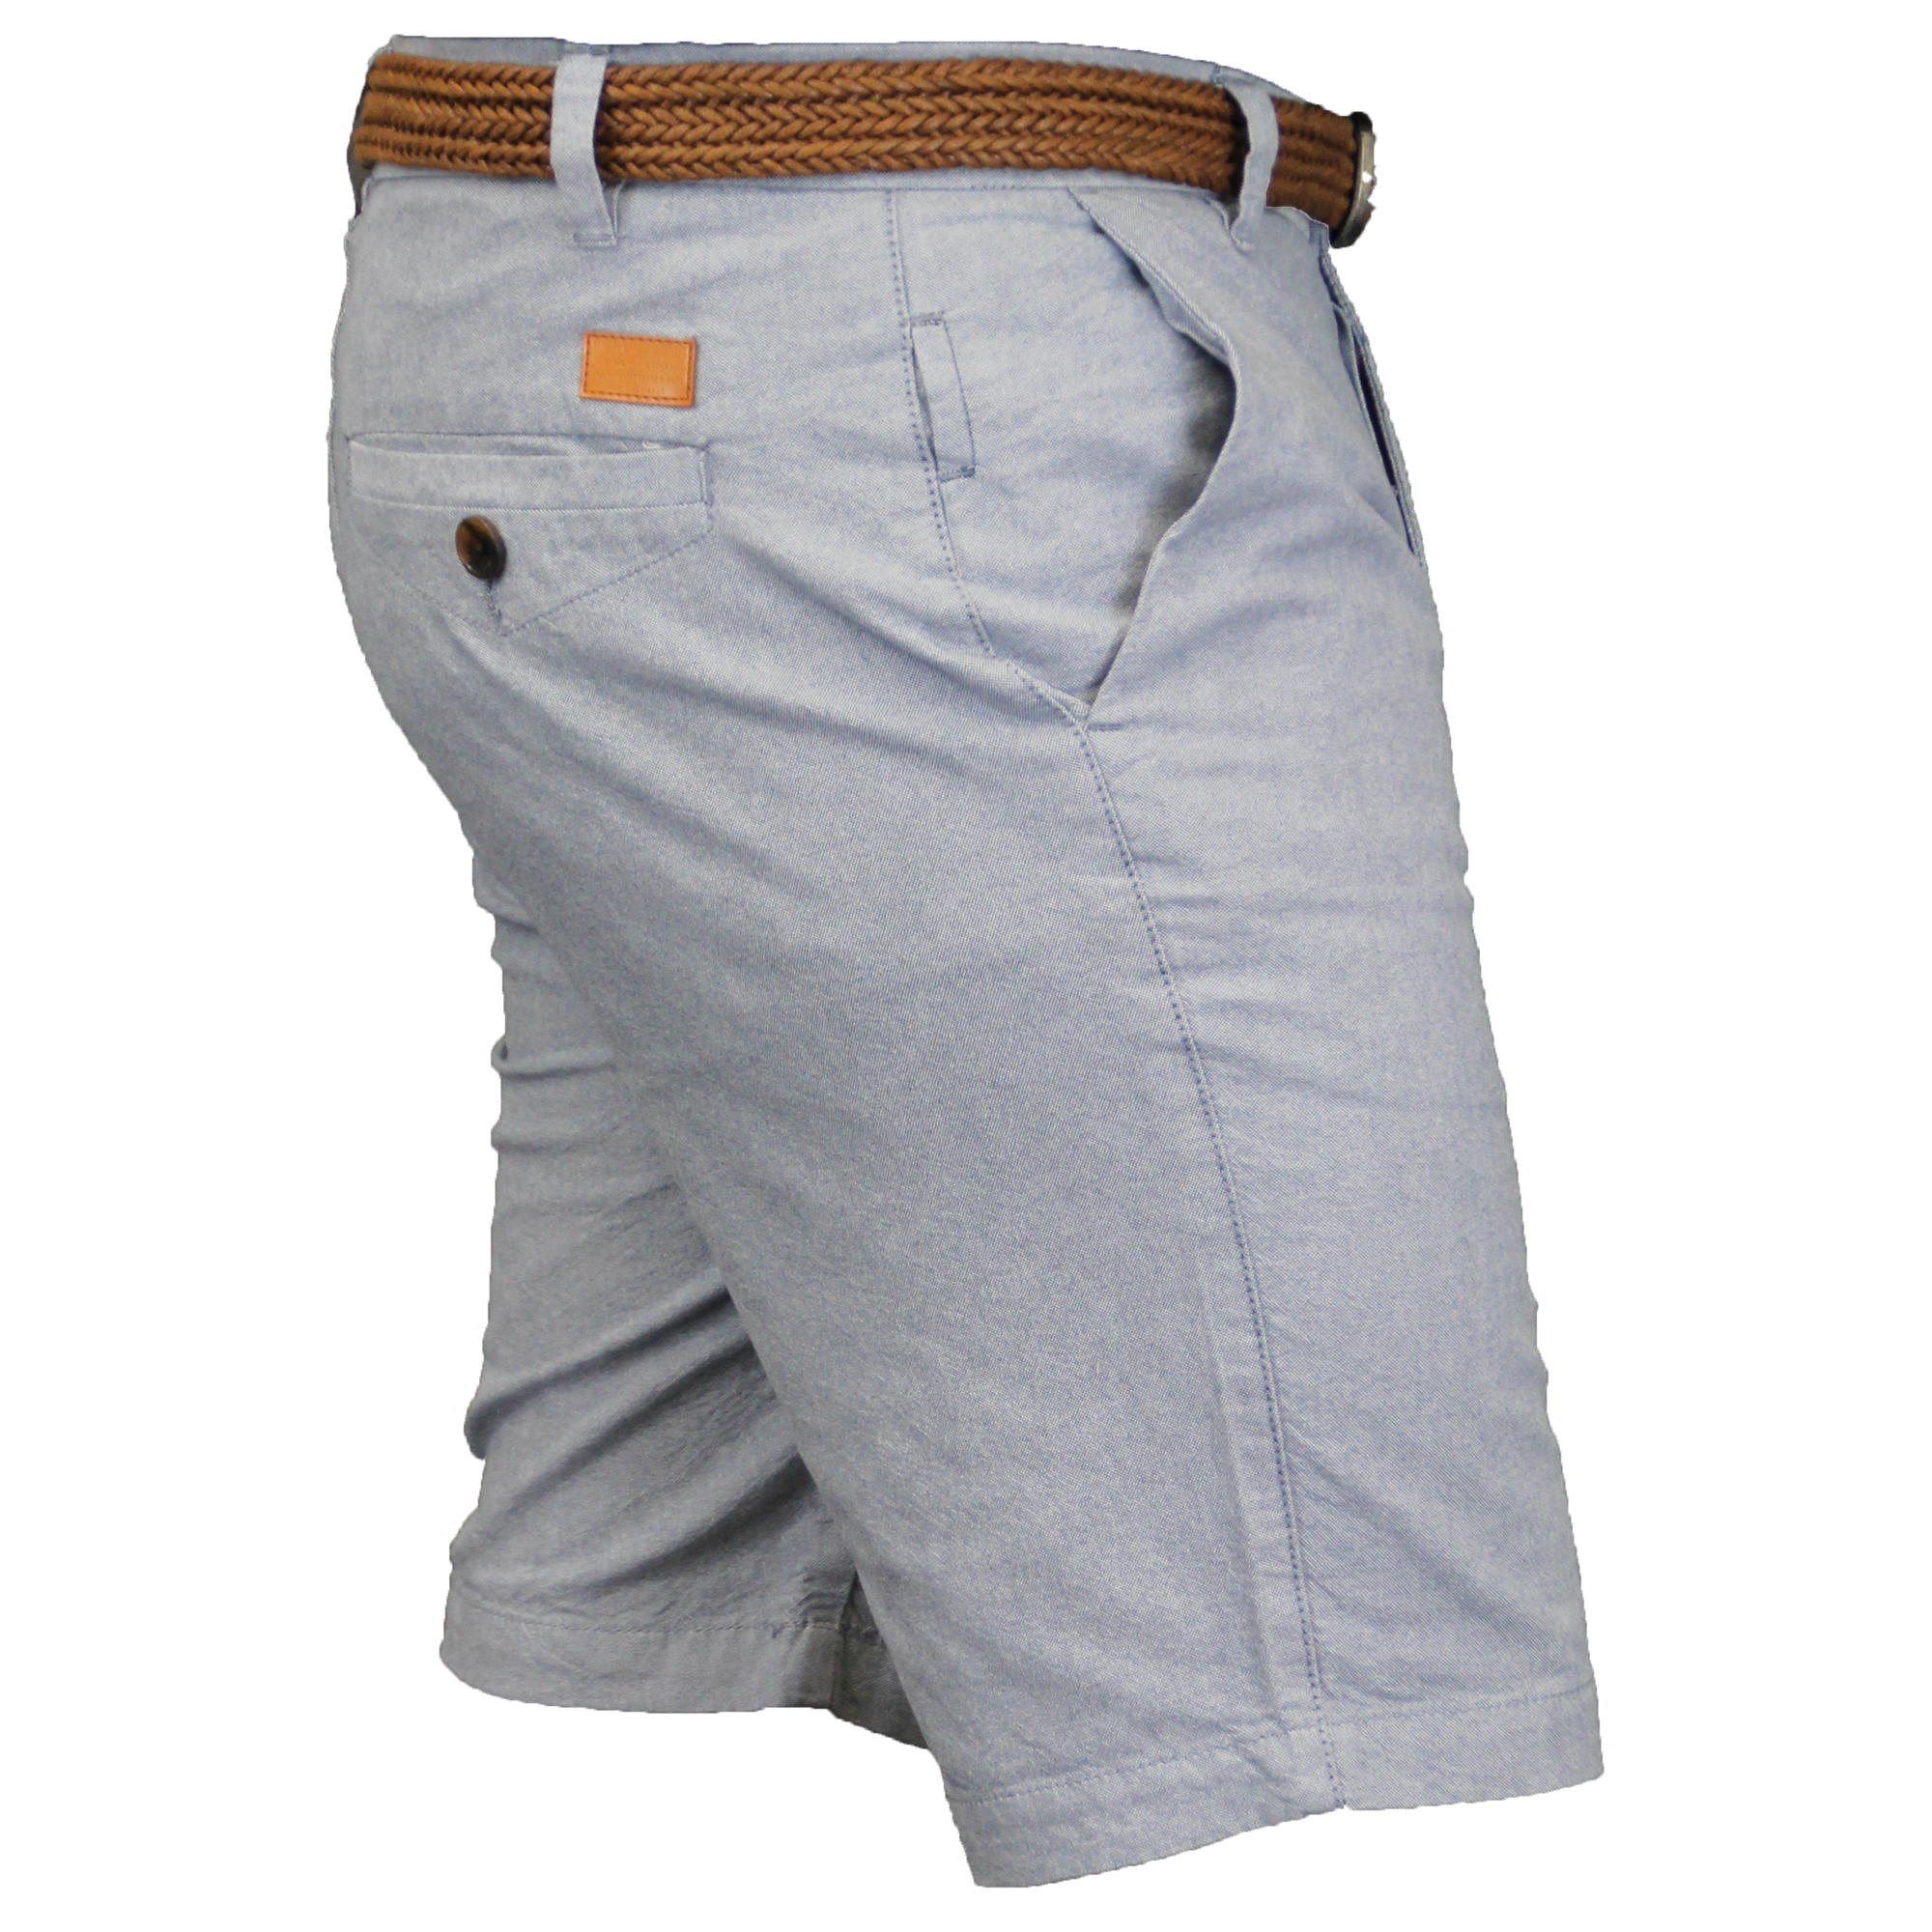 Mens-Cotton-Oxford-Chino-Shorts-Threadbare-Belted-Pants-Knee-Length-Summer-New thumbnail 3